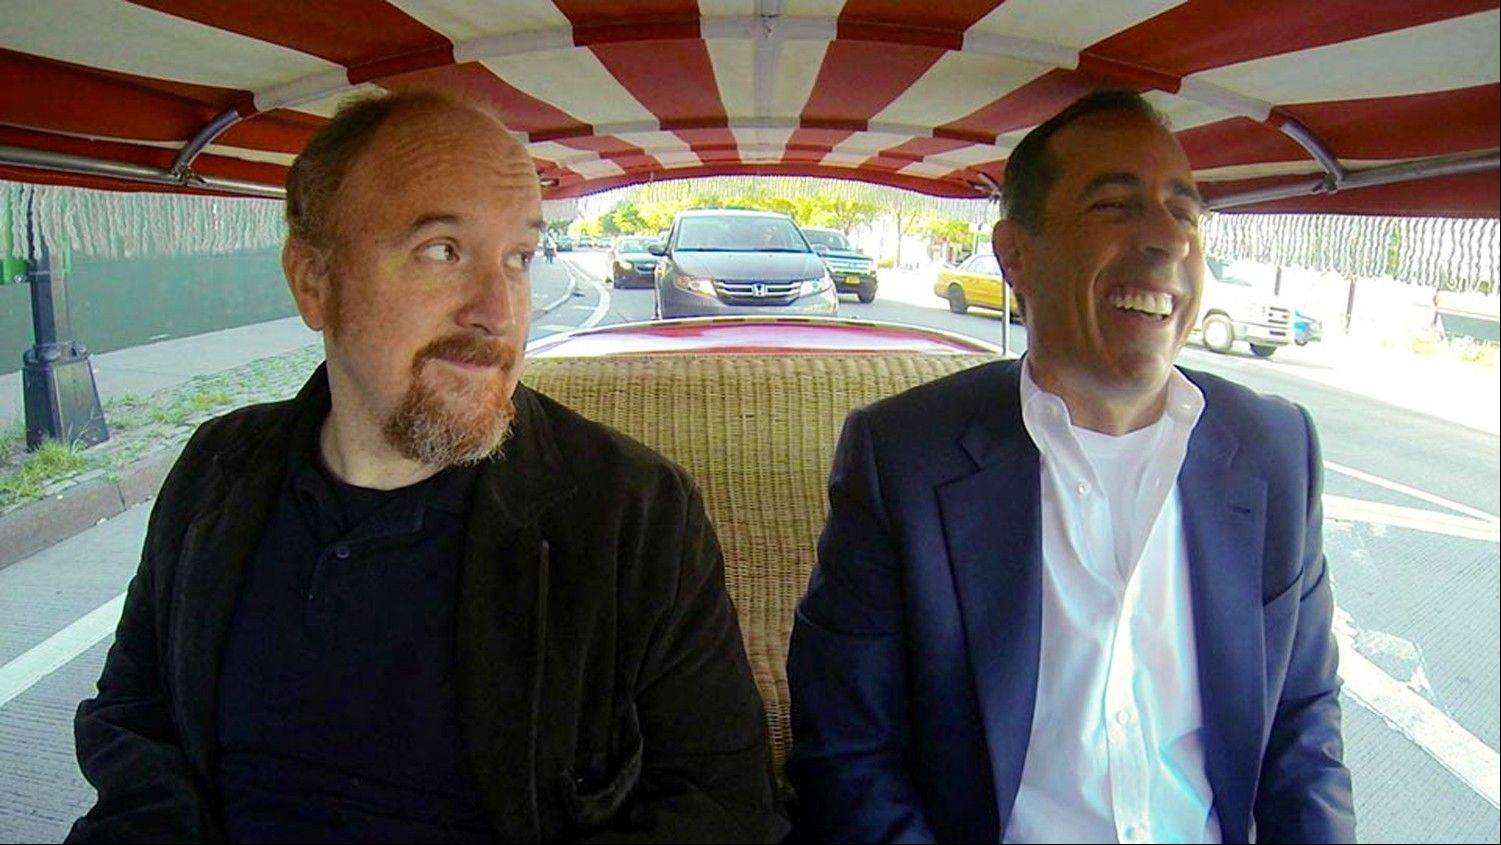 Comedians Louis C.K., left, and Jerry Seinfeld share a laugh during Seinfeld�s new web series talk show �Comedians in Cars Getting Coffee.� The series launched on the Crackle digital network in 2012, and its third season cranks up Thursday, Jan. 2, with Seinfeld joining Louis C.K. for a cup of joe after a zany ride on a clown-car-scale 1959 Fiat Jolly.